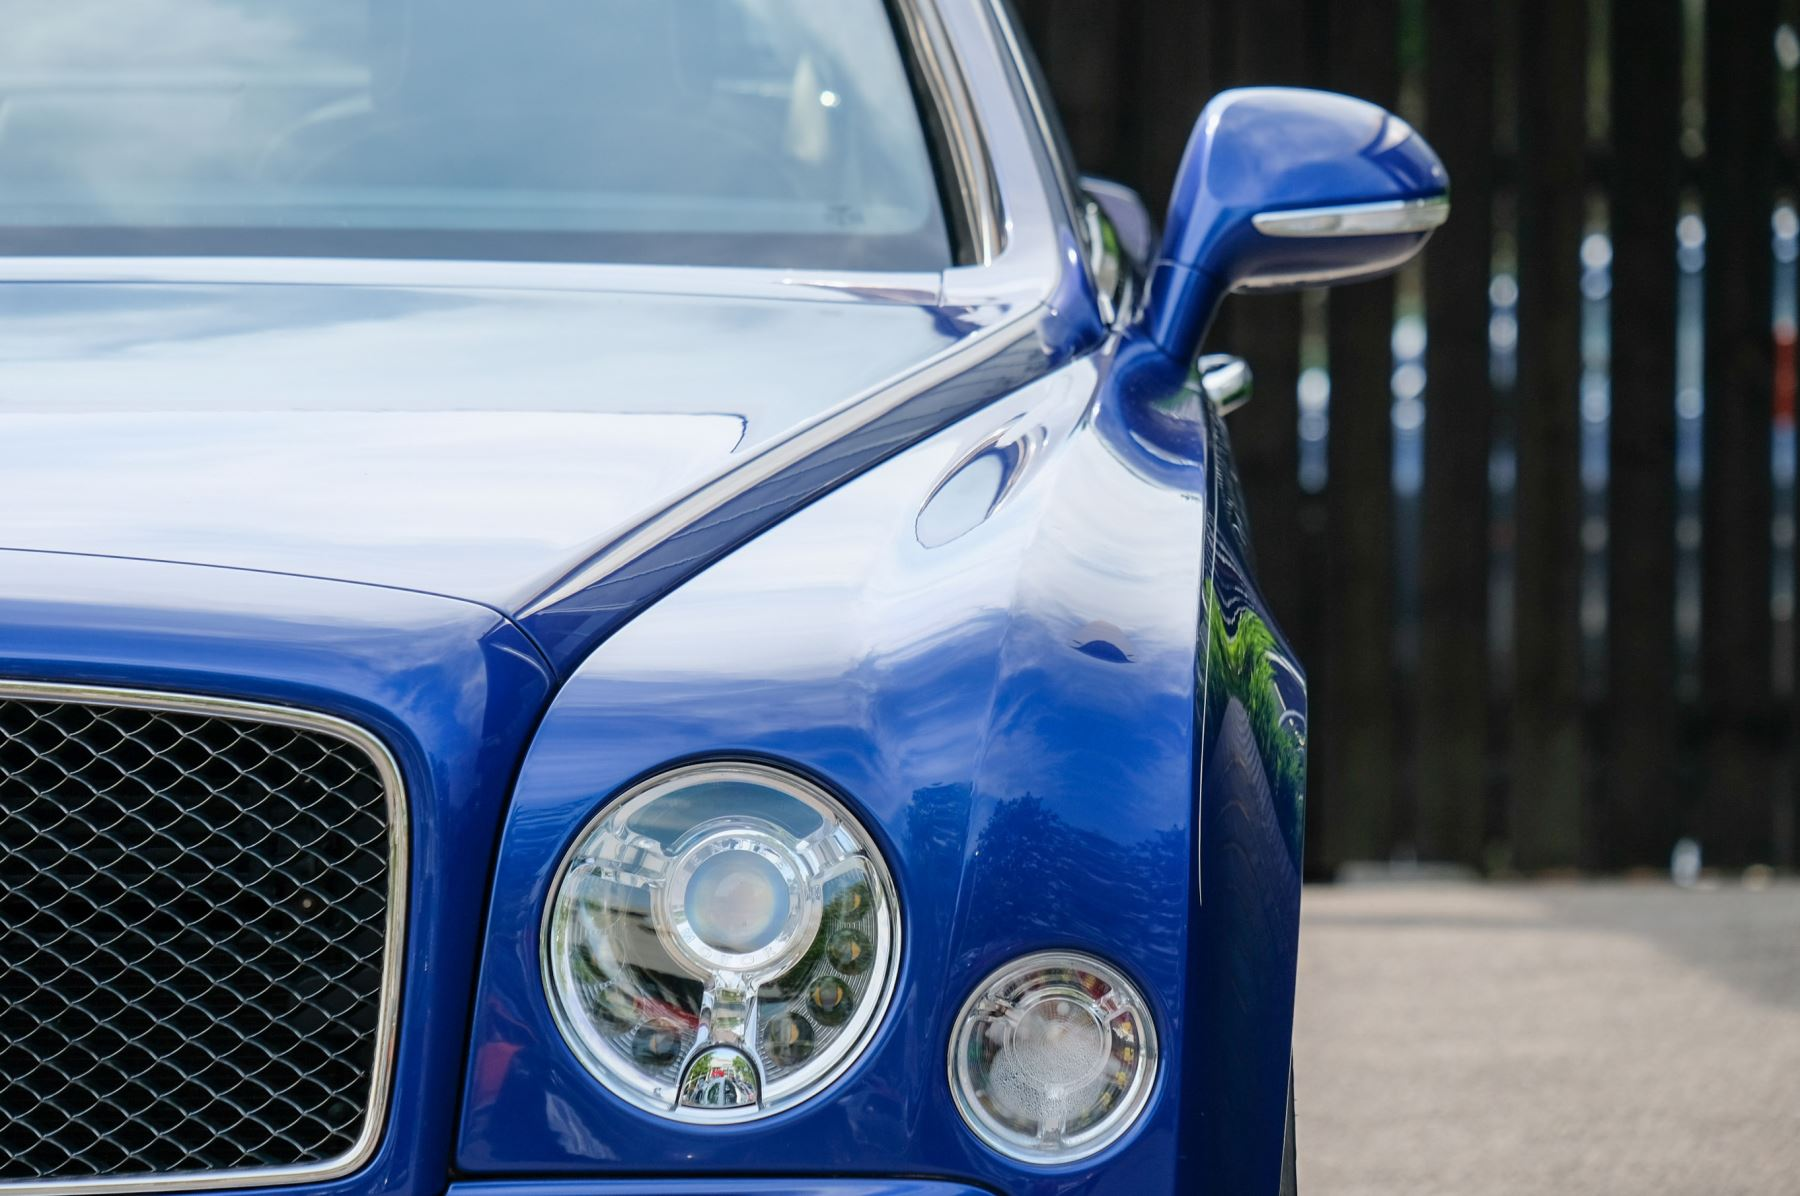 Bentley Mulsanne Speed 6.8 V8 Speed - Speed Premier and Entertainment Specification image 6